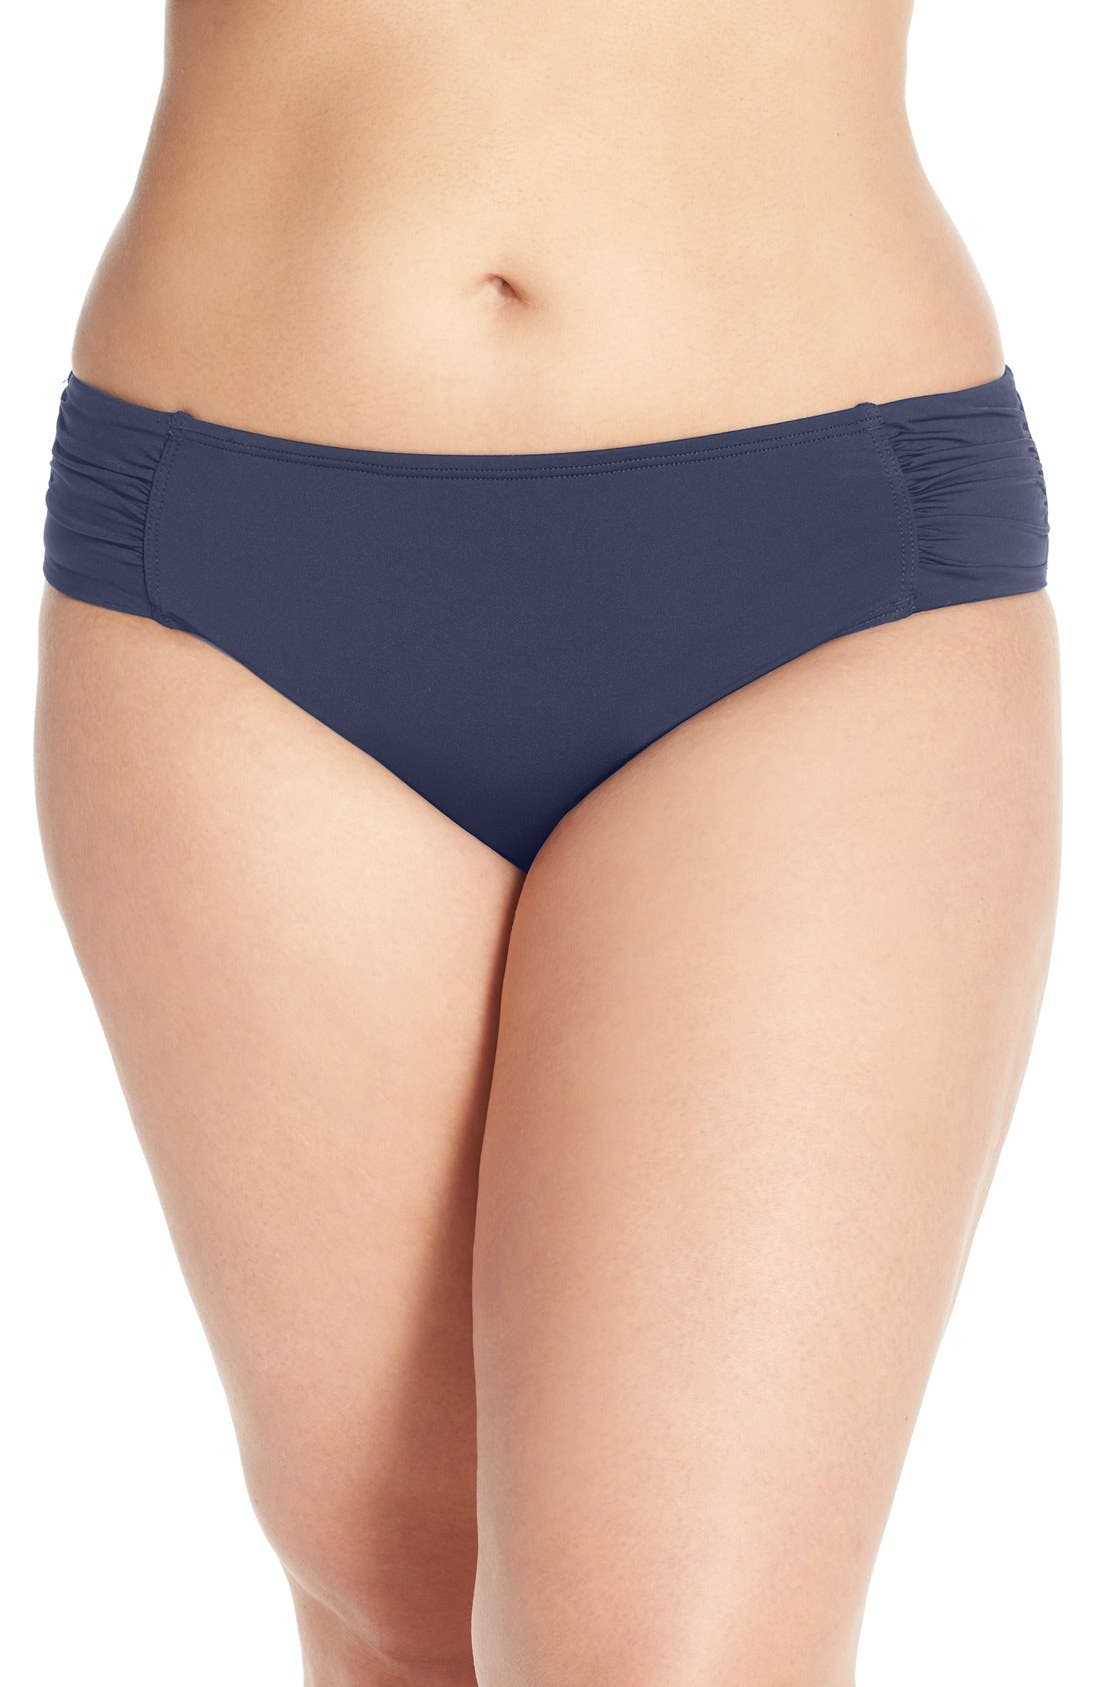 Alternate Image 1 Selected - Tommy Bahama 'Pearl' Bikini Bottoms (Plus Size)